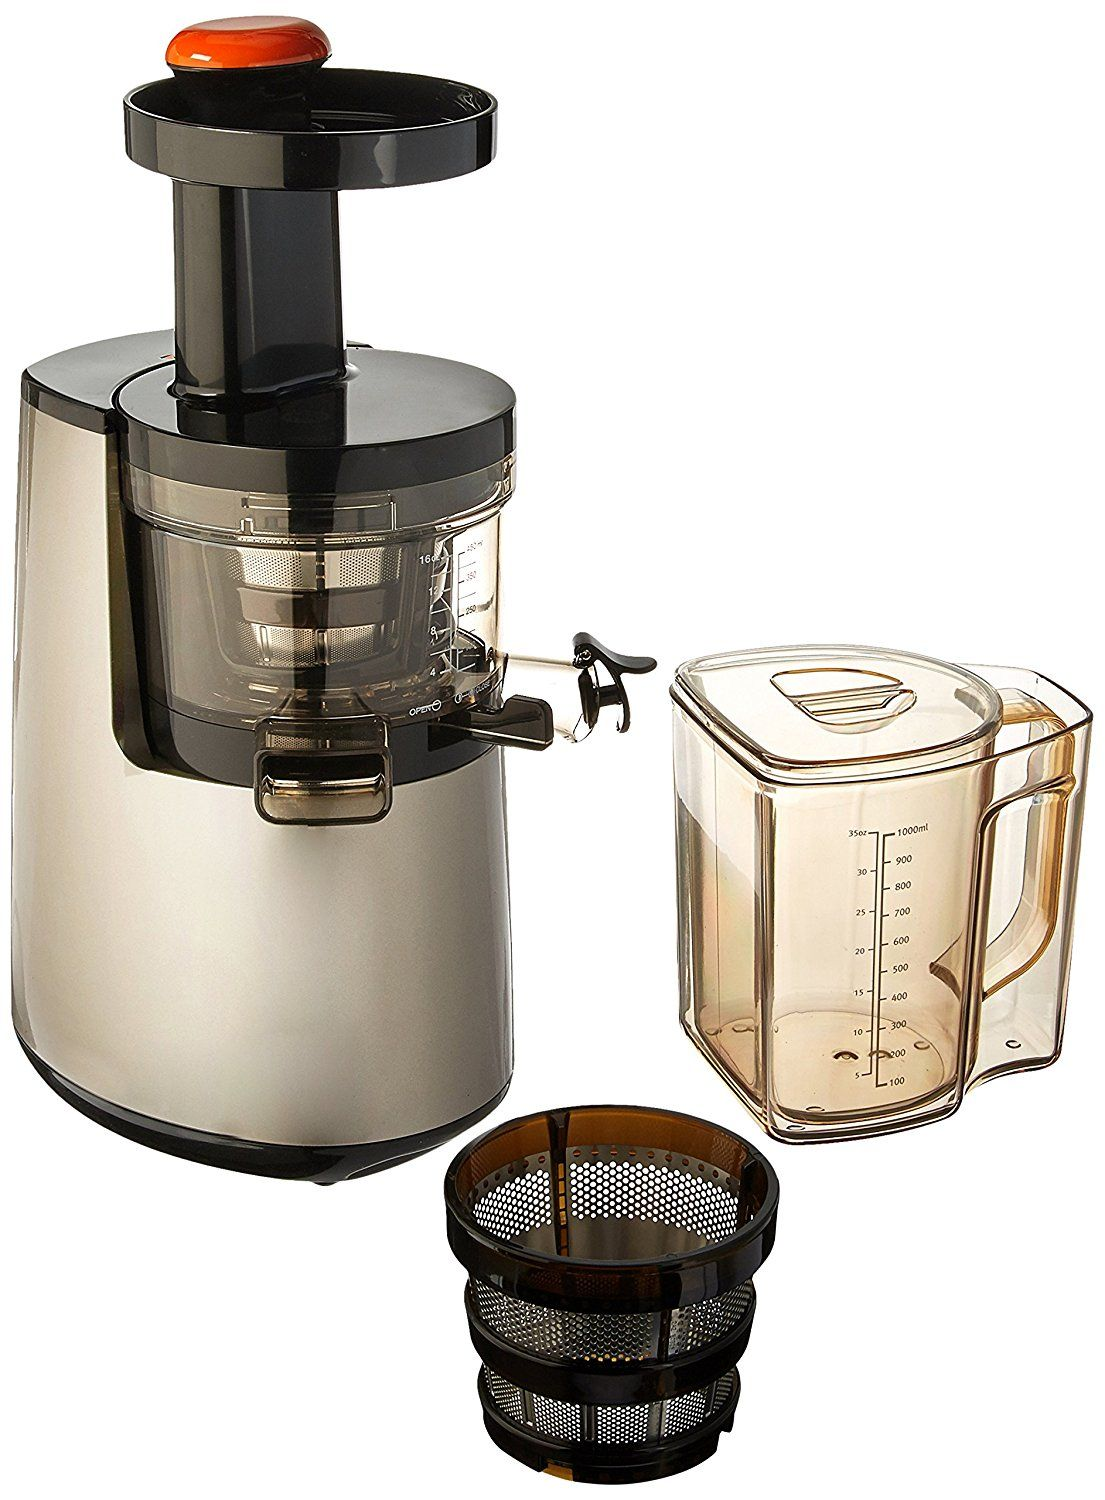 Amazon.com: Hurom Elite Slow Juicer Model HH-SBB11 Noble Silver with Cookbook: Kitchen & Dining